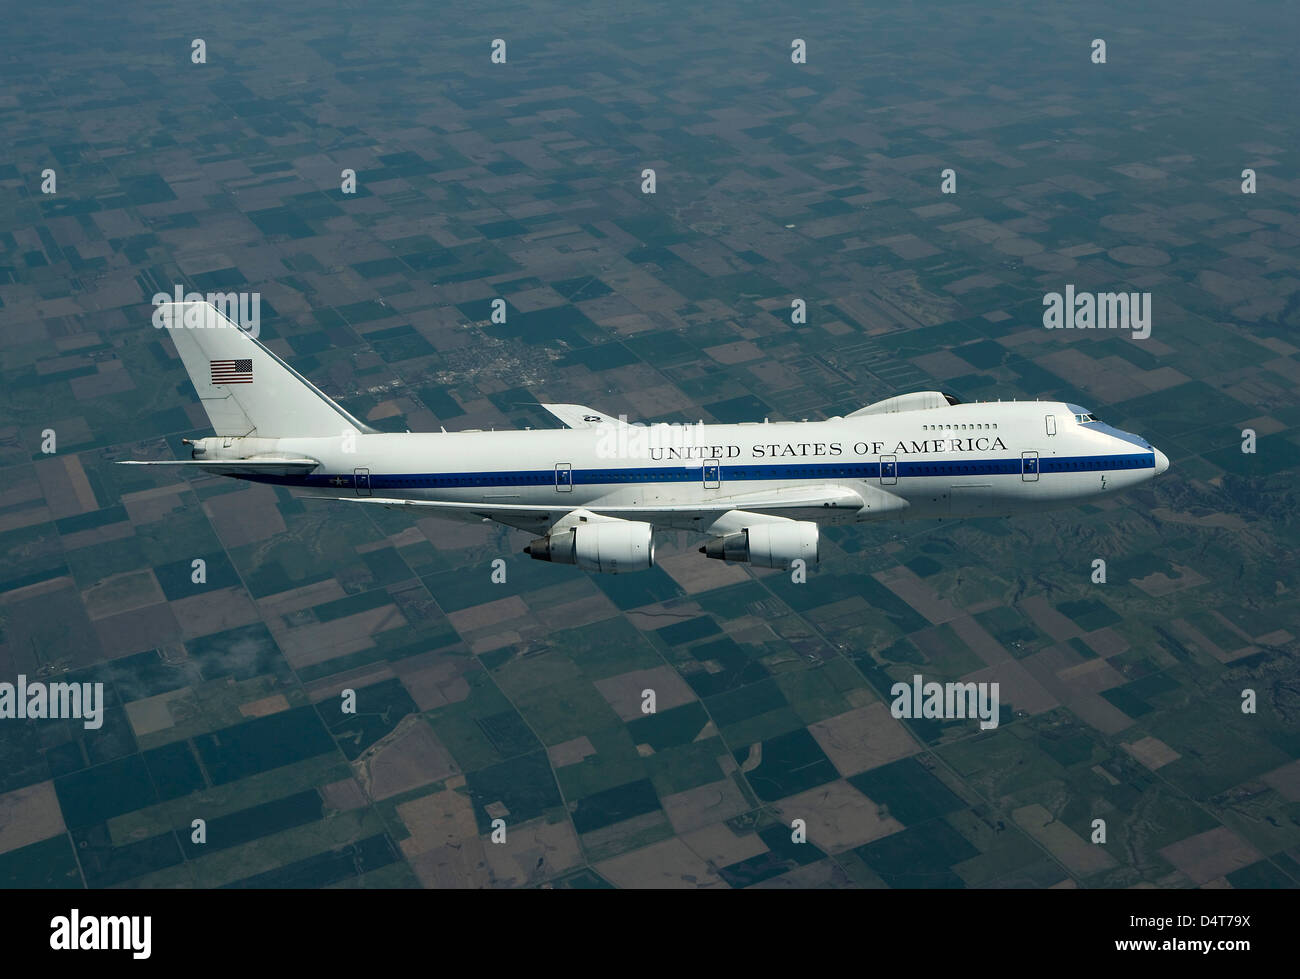 An E-4B National Airborne Operations Center aircraft. - Stock Image